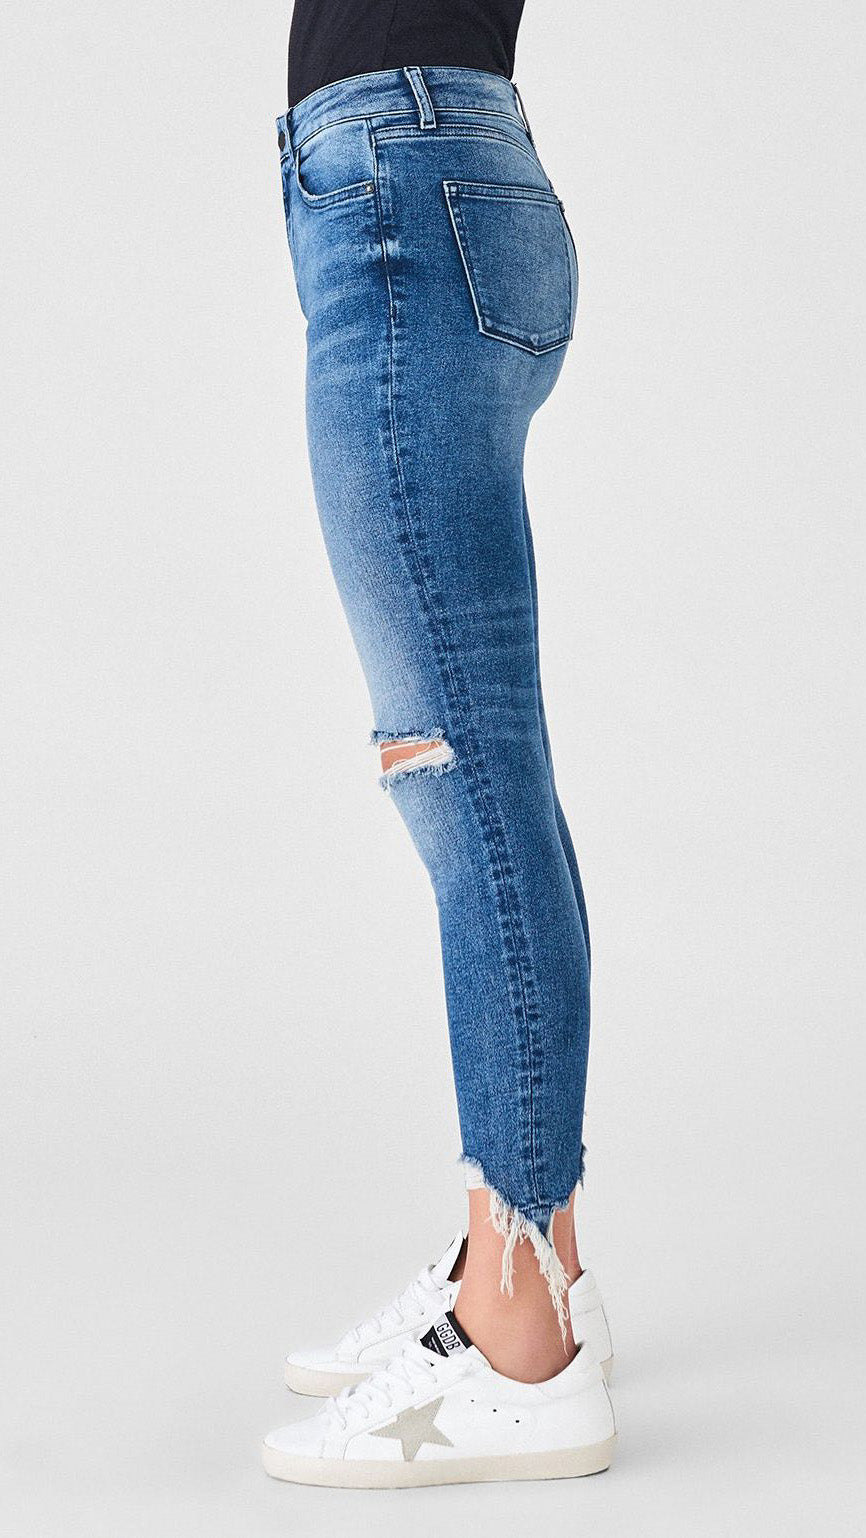 Farrow High Rise Ankle Skinny in Laramie by DL1961